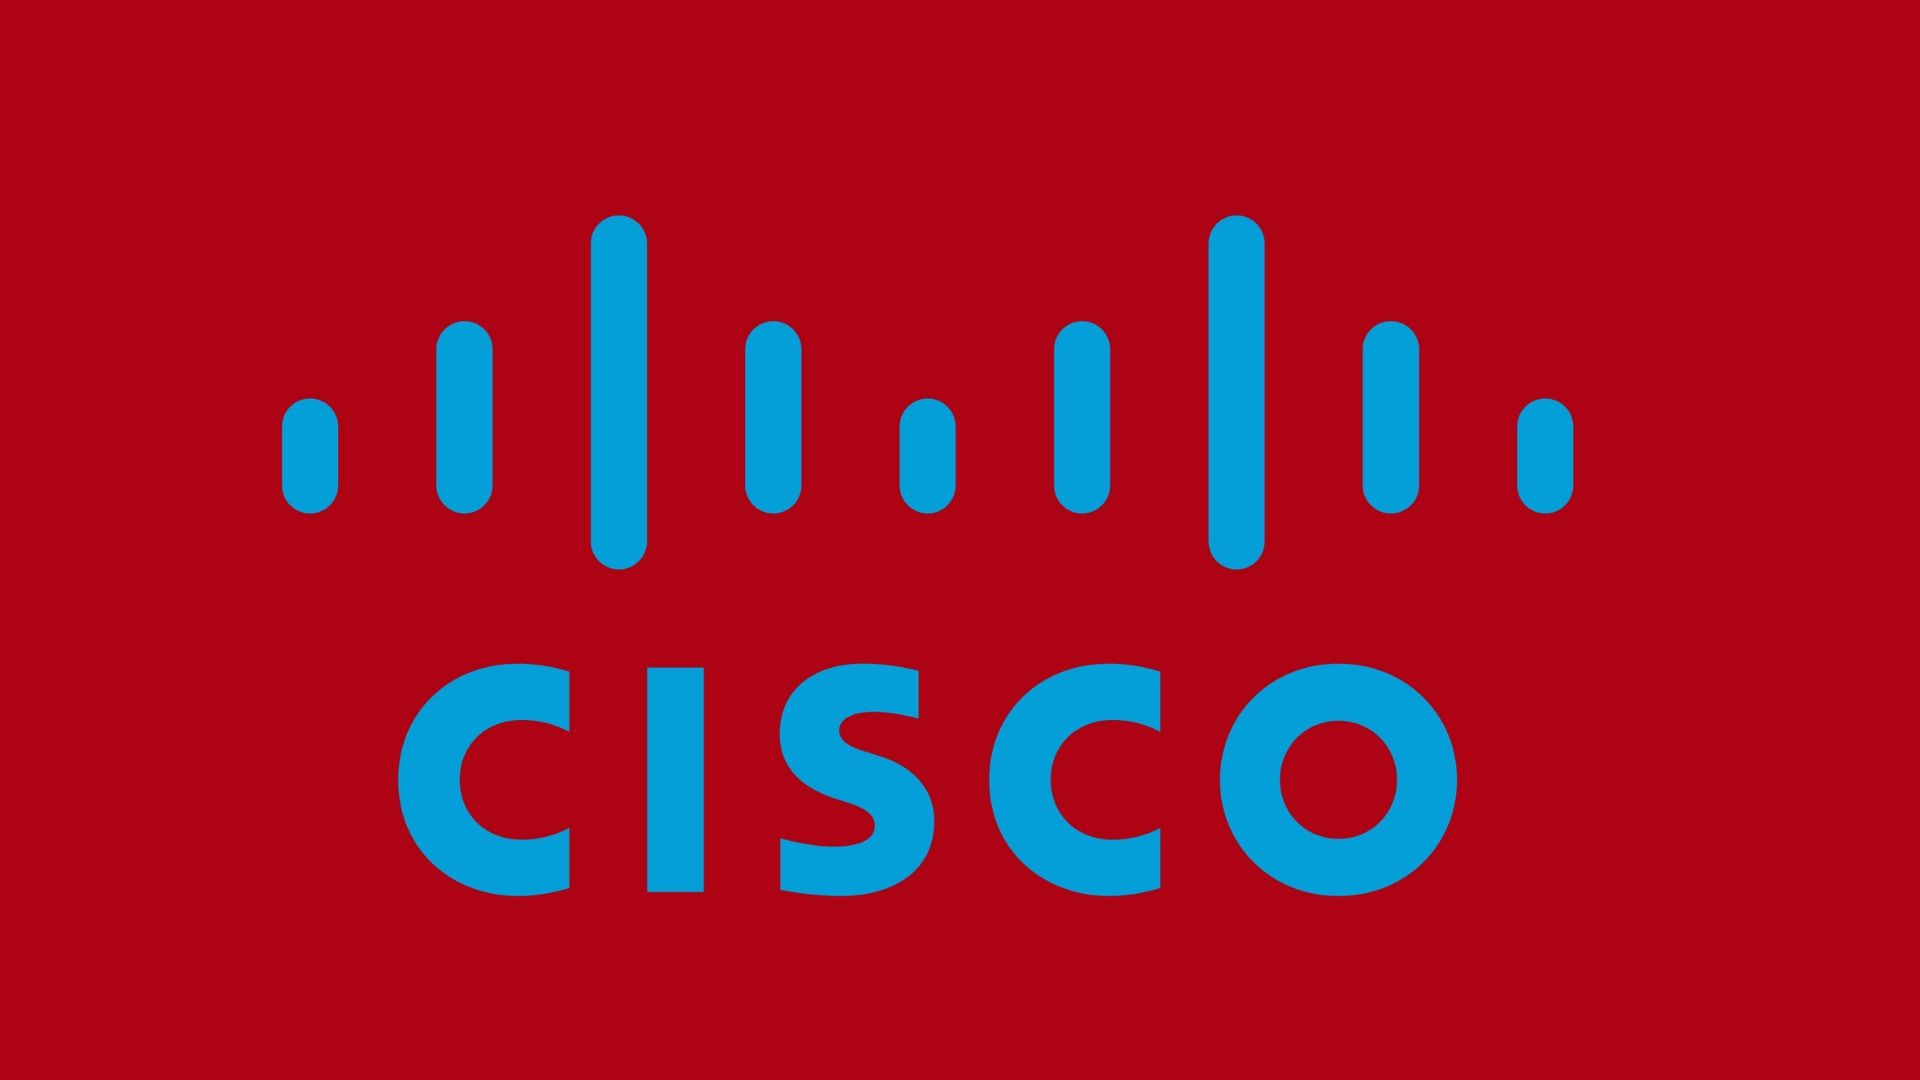 Cisco Competitors